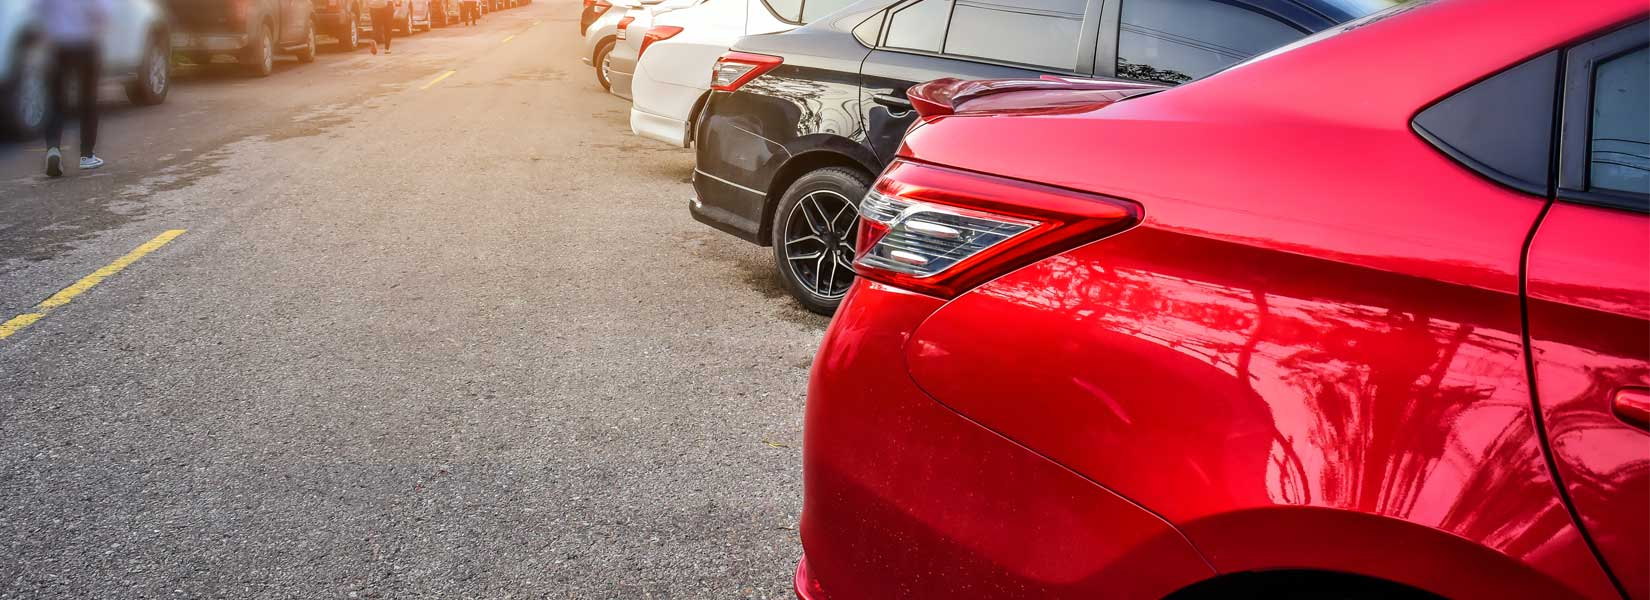 Picture of cars parked